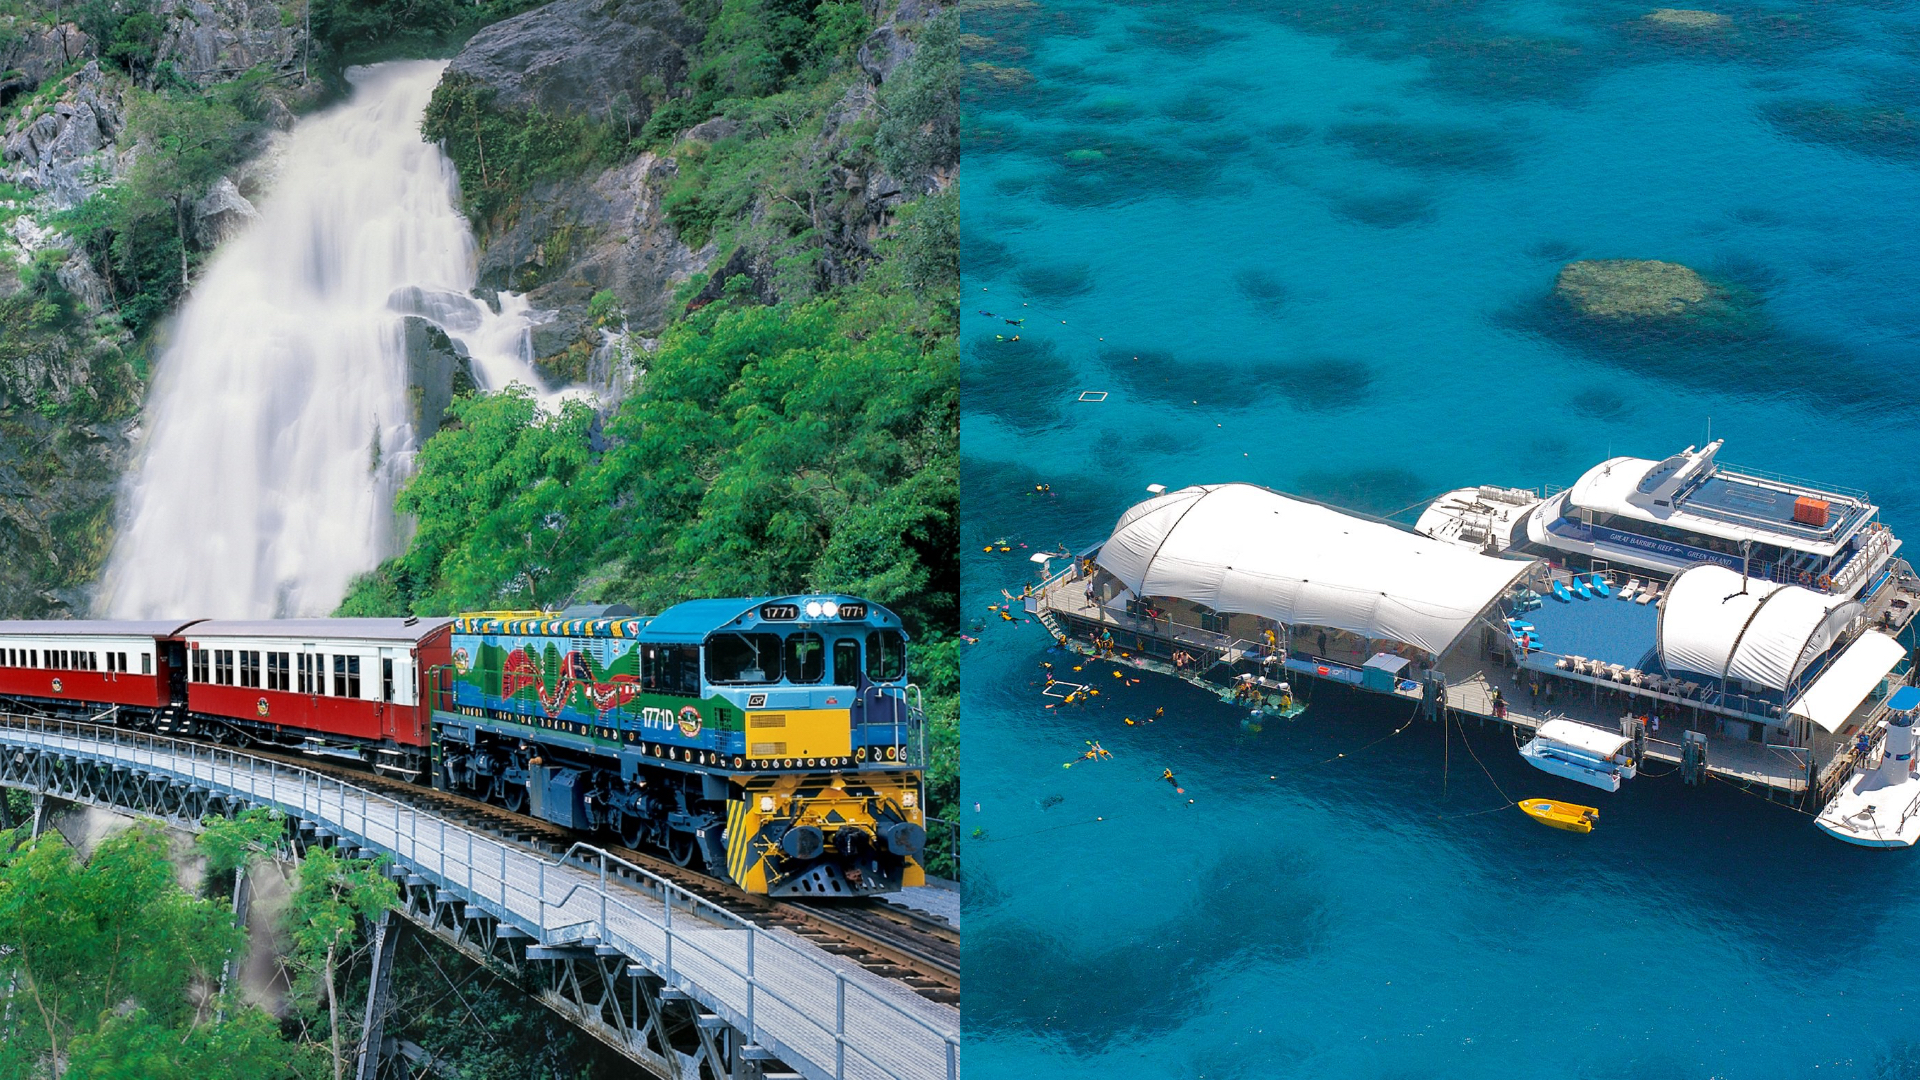 Kuranda (Skyrail & Train) + Green Island and Great Barrier Reef – 2 Day Package